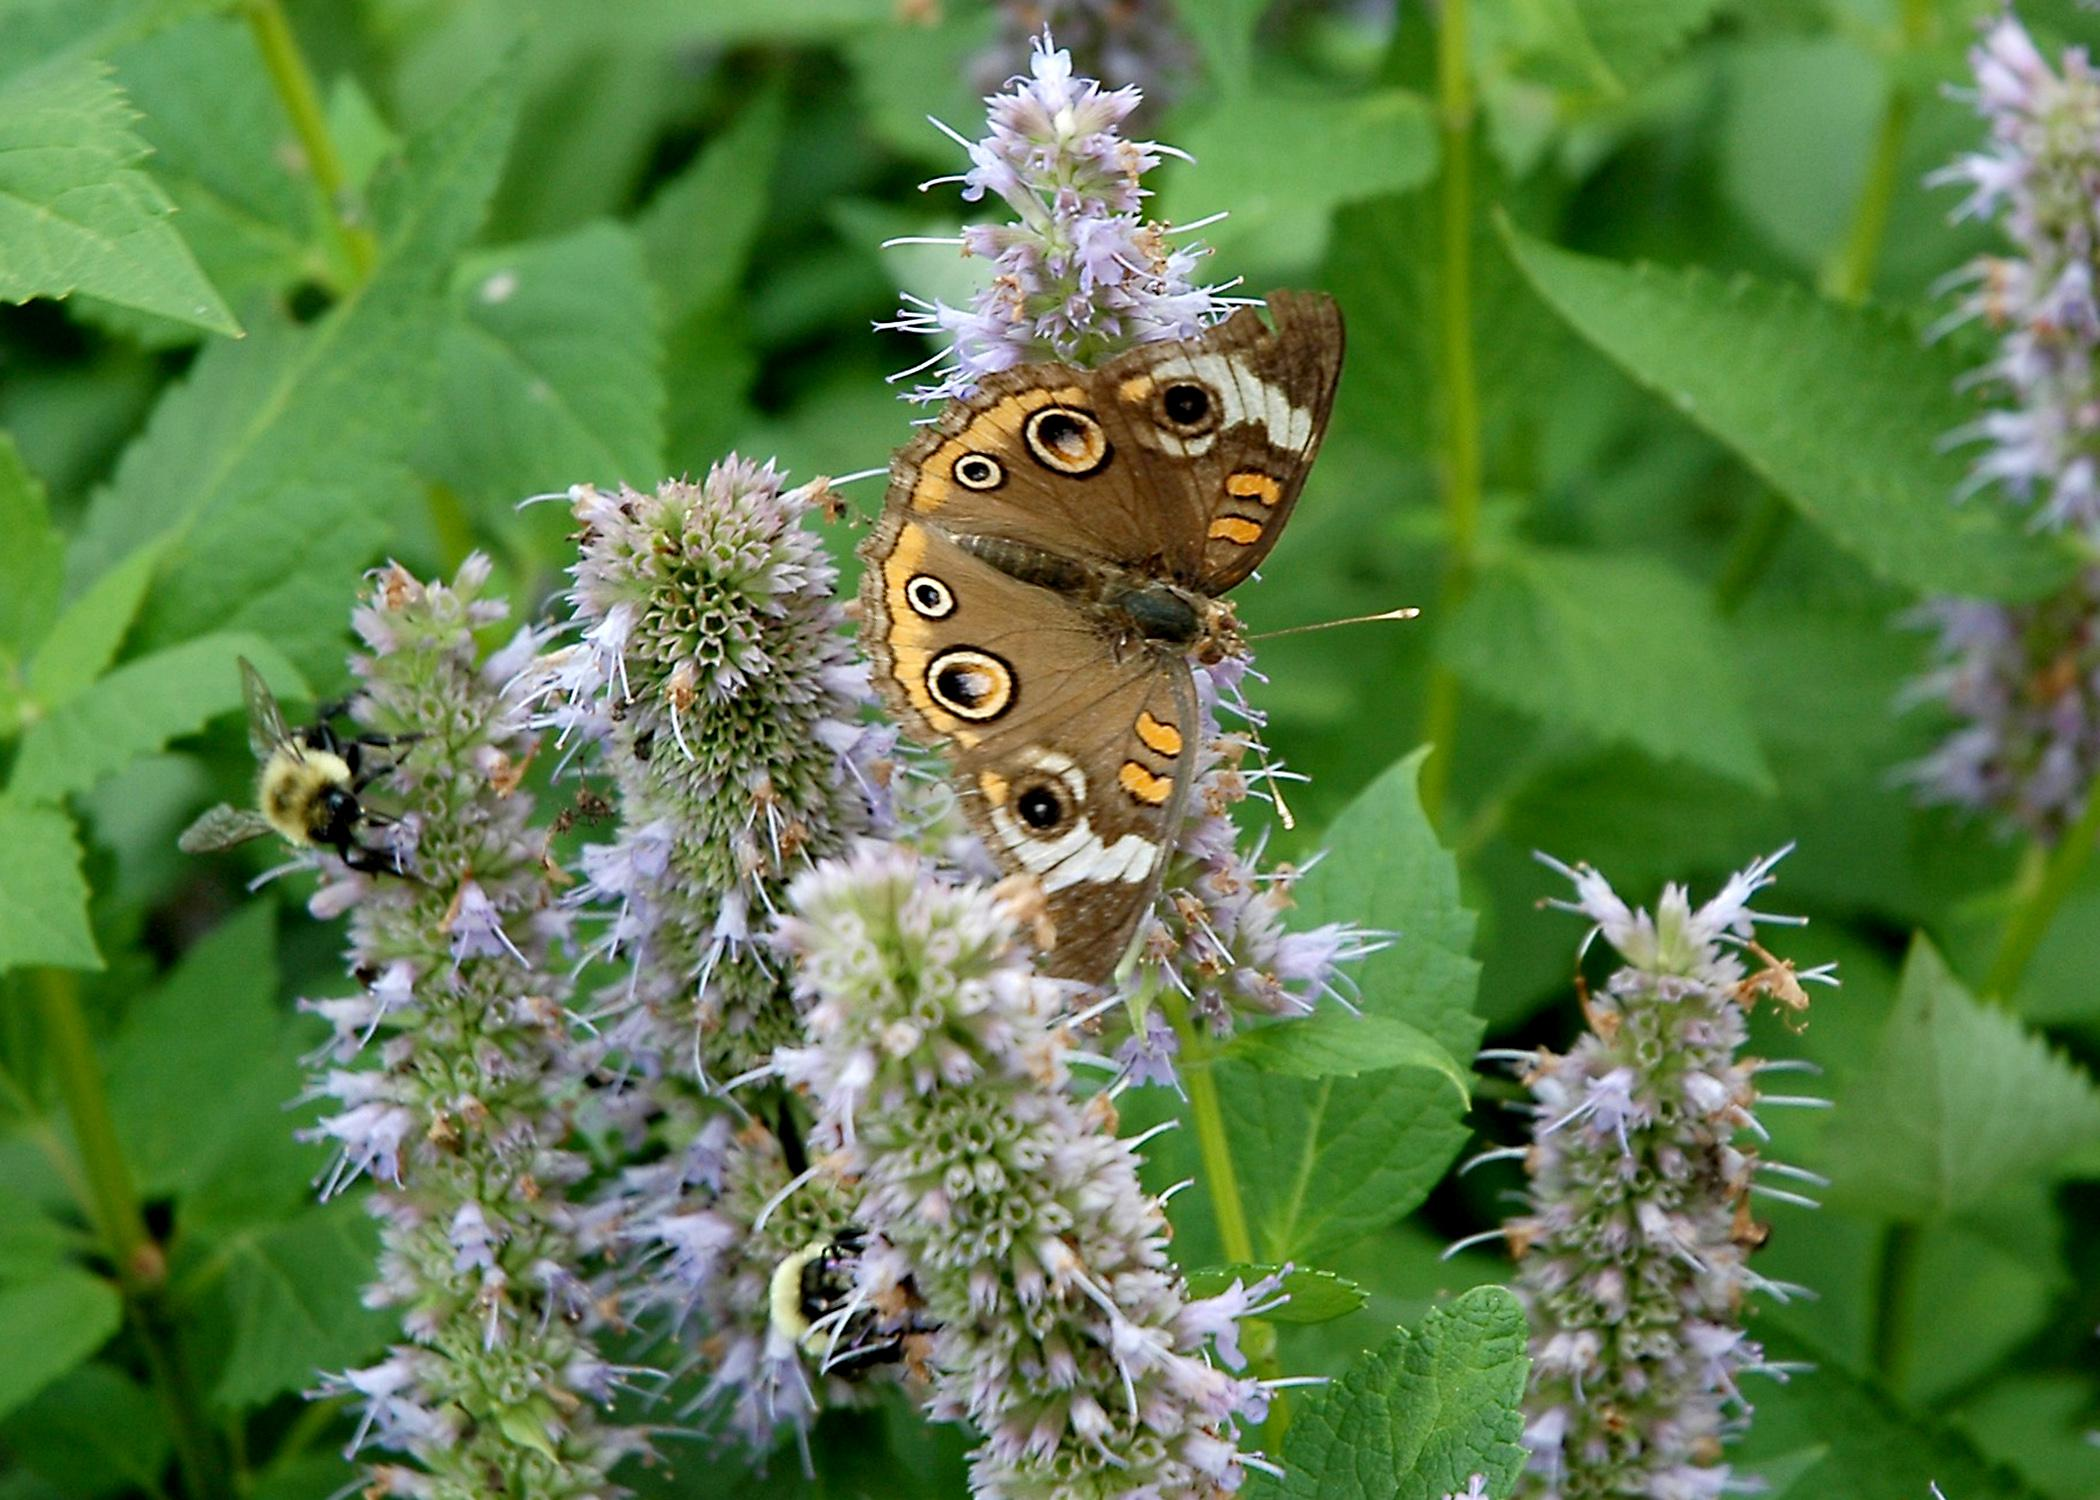 Butterflies, such as this buckeye butterfly, and other plants, animals and insects will be counted during the Mississippi BioBlitz on Oct. 4, 2014, at the Natchez Trace Parkway Visitor Center near Tupelo. BioBlitz is a 13-hour event that teams scientists, students, teachers and community members to track down and identify as many local species as possible. (MSU Ag Communications/File Photo)